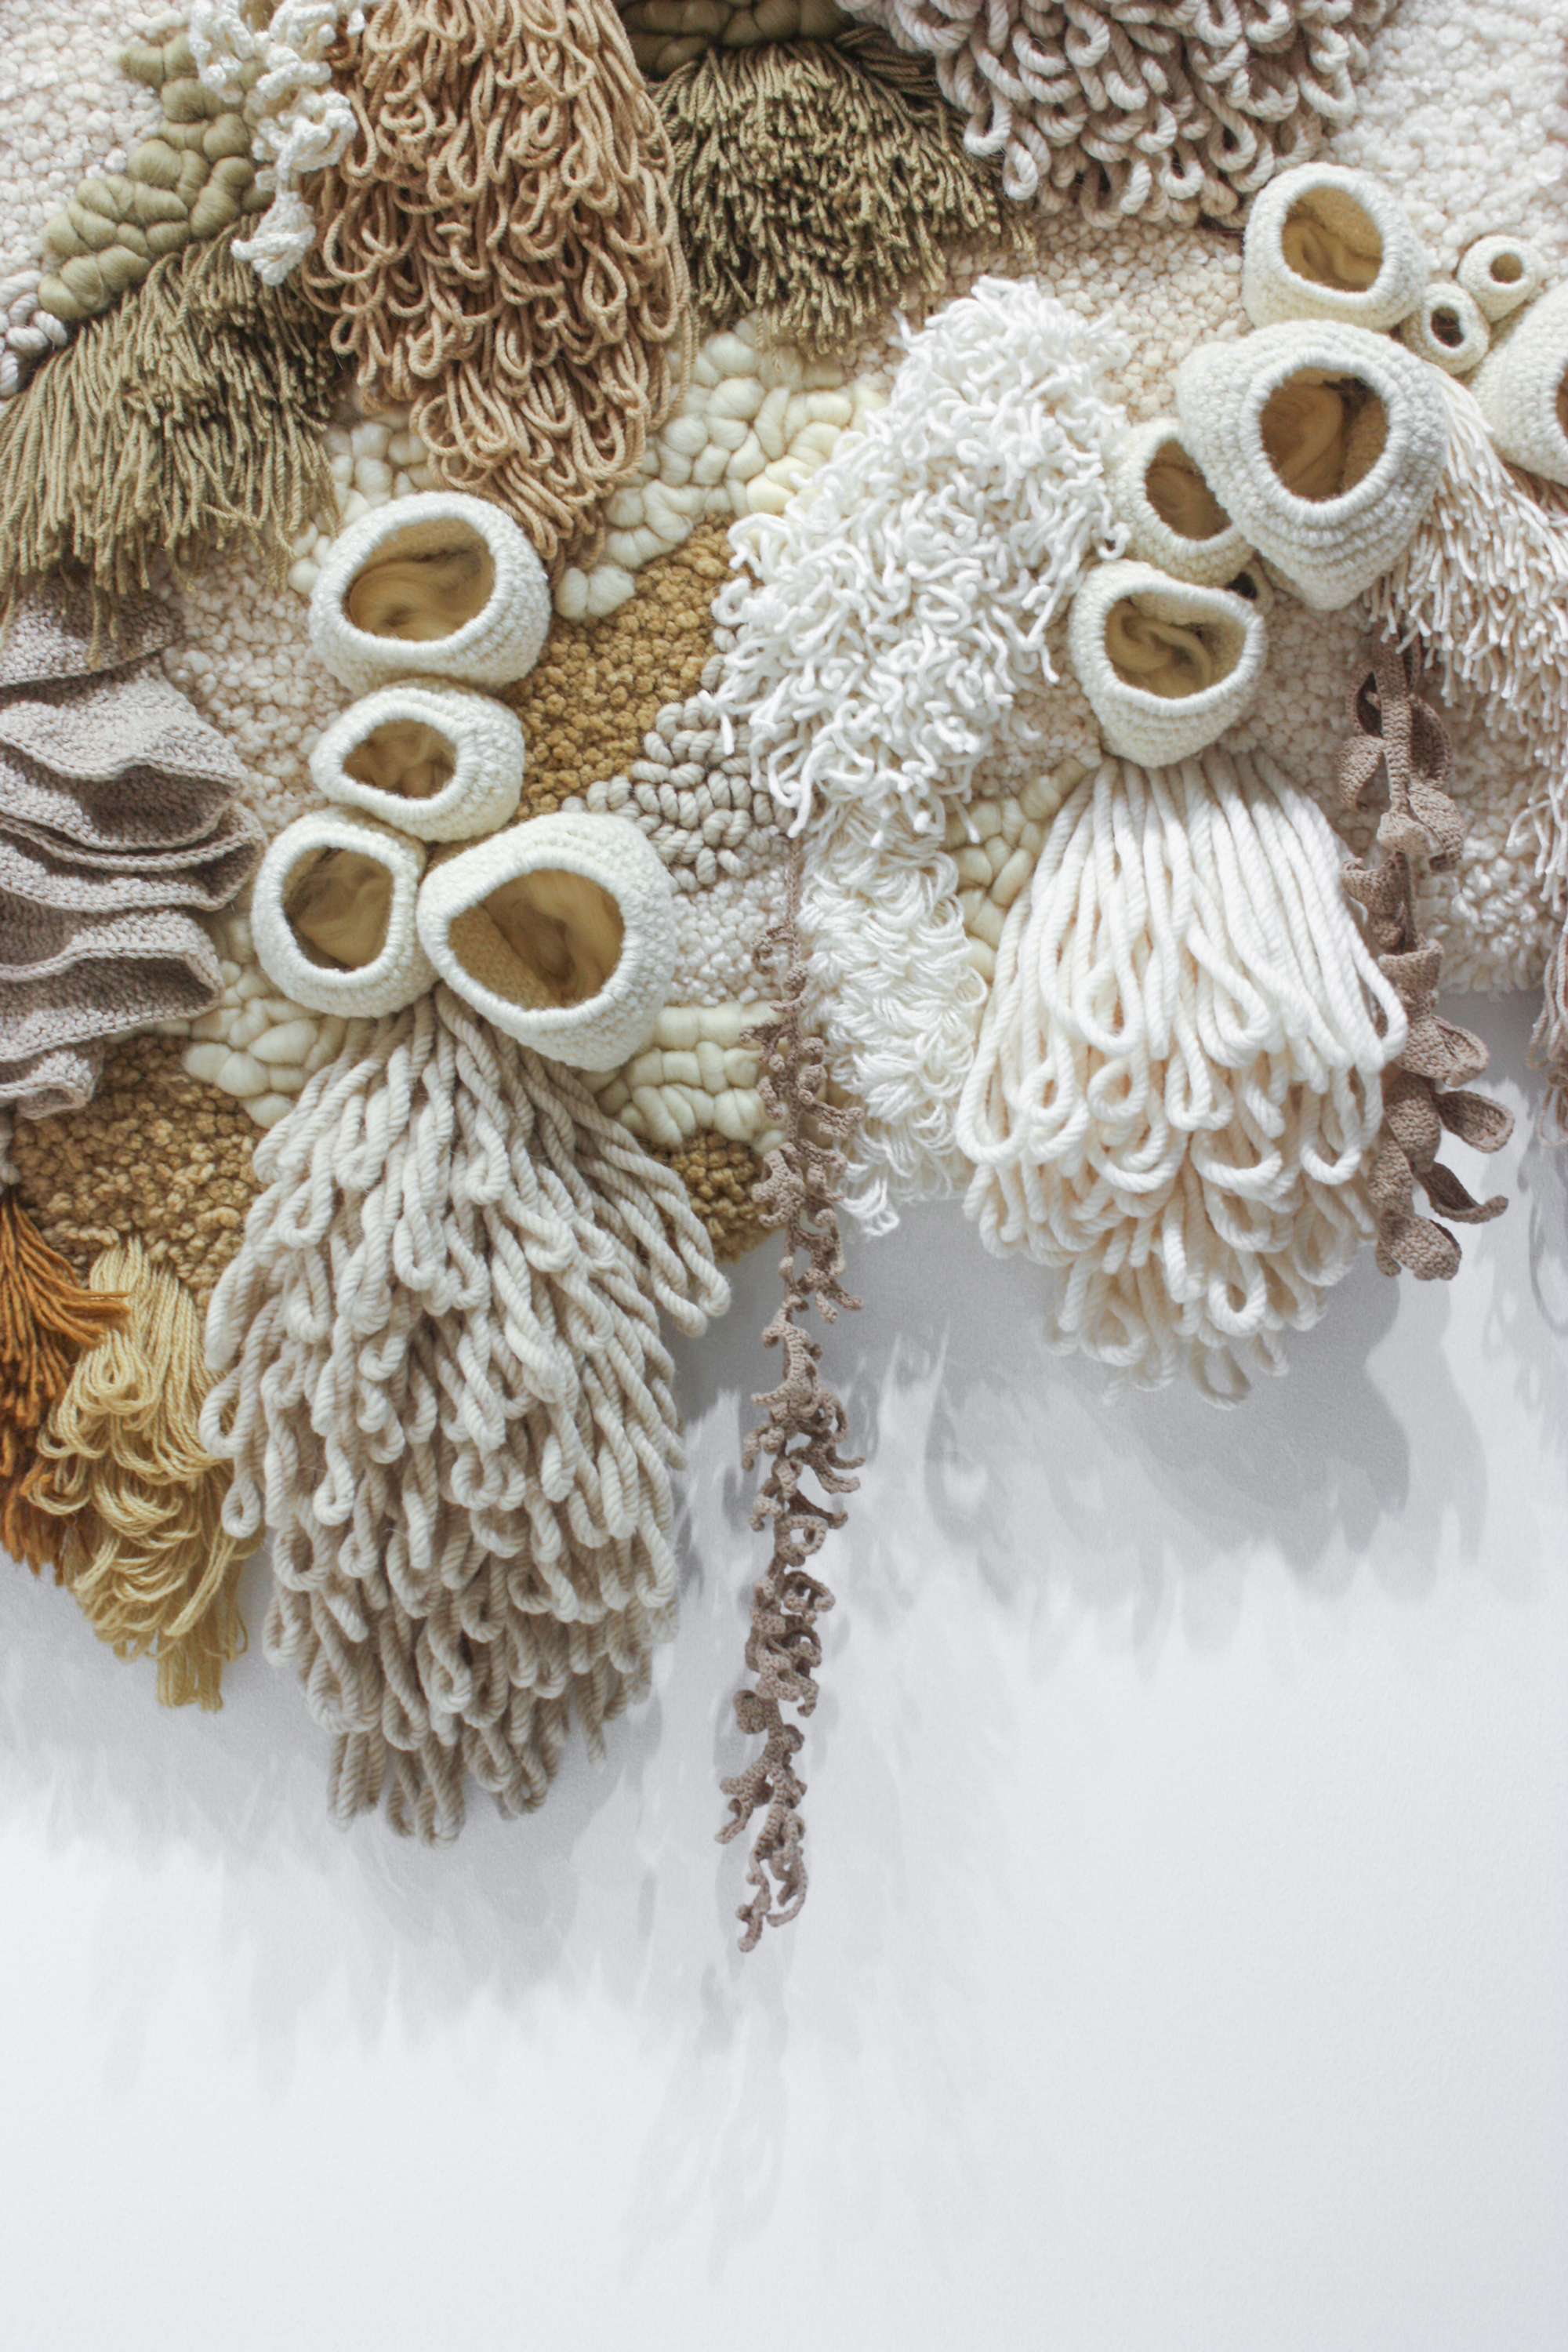 Deadstock Rug Materials Transformed into an Immersive Coral Garden by Vanessa Barragão | Colossal